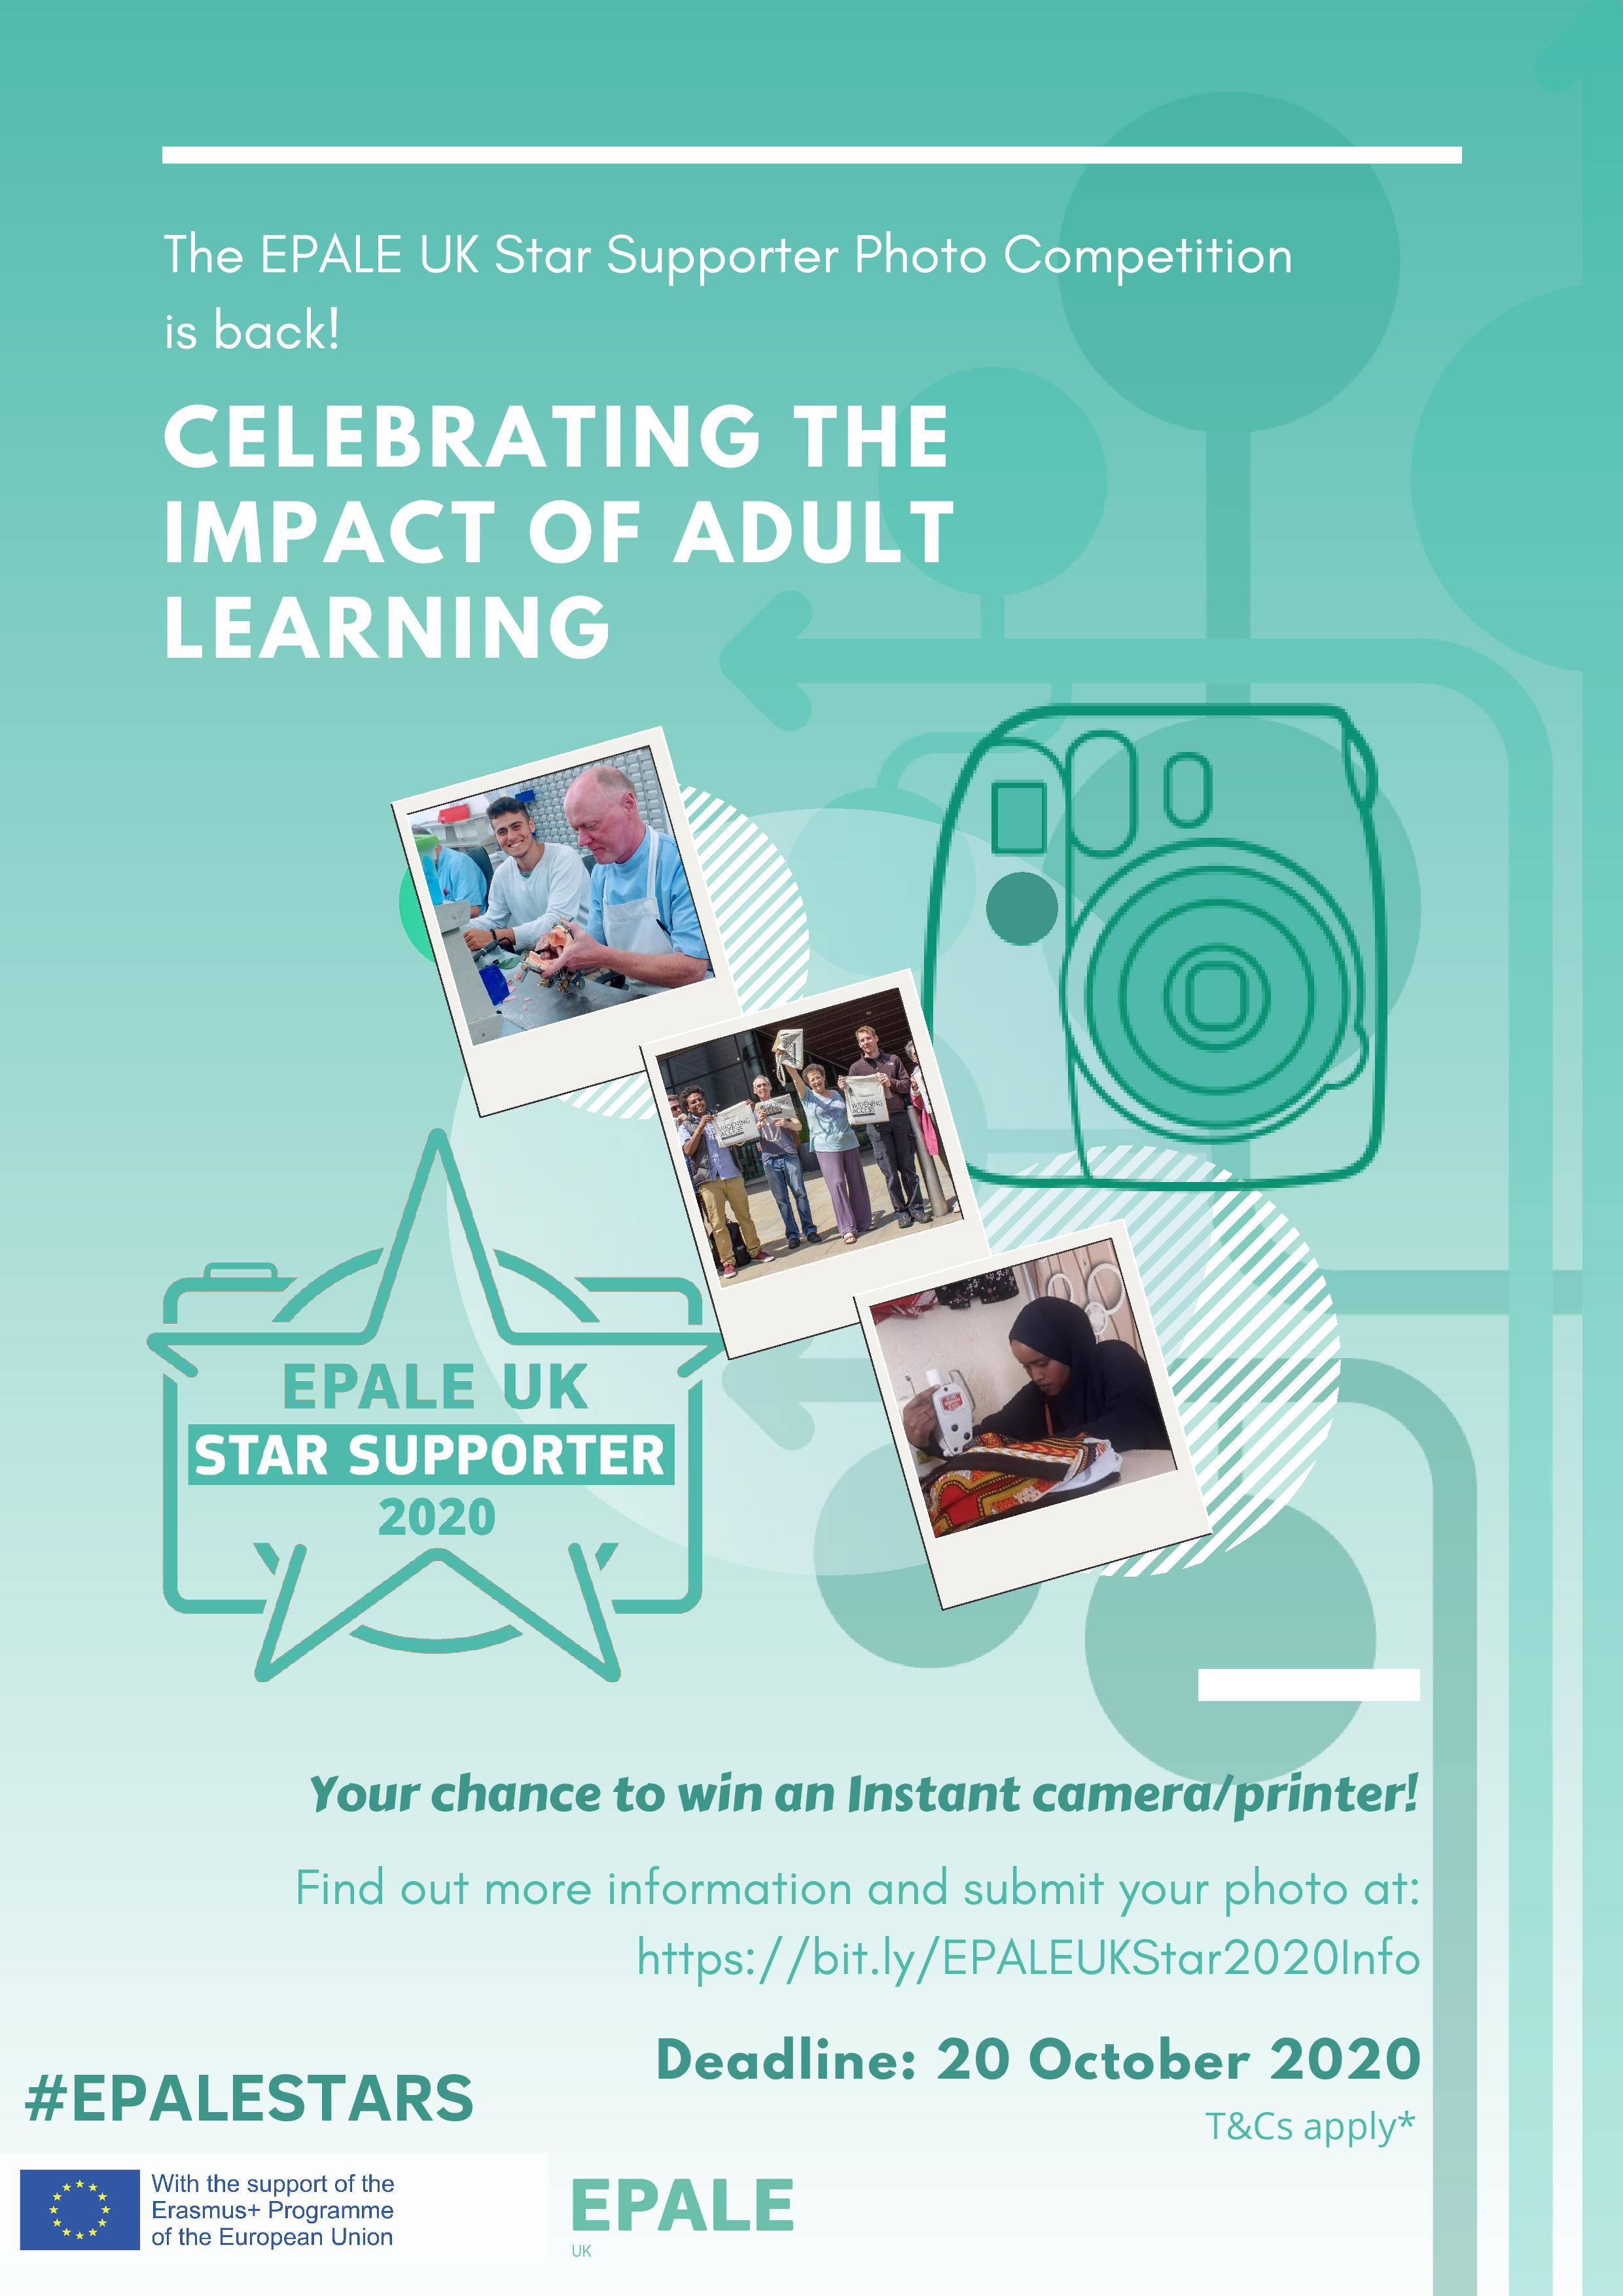 The EPALE UK Star Supporter Photo Competition is back! This year's theme is CELEBRATING THE IMPACT OF ADULT LEARNING. Deadline: 20 October 2020. #EPALESTARS